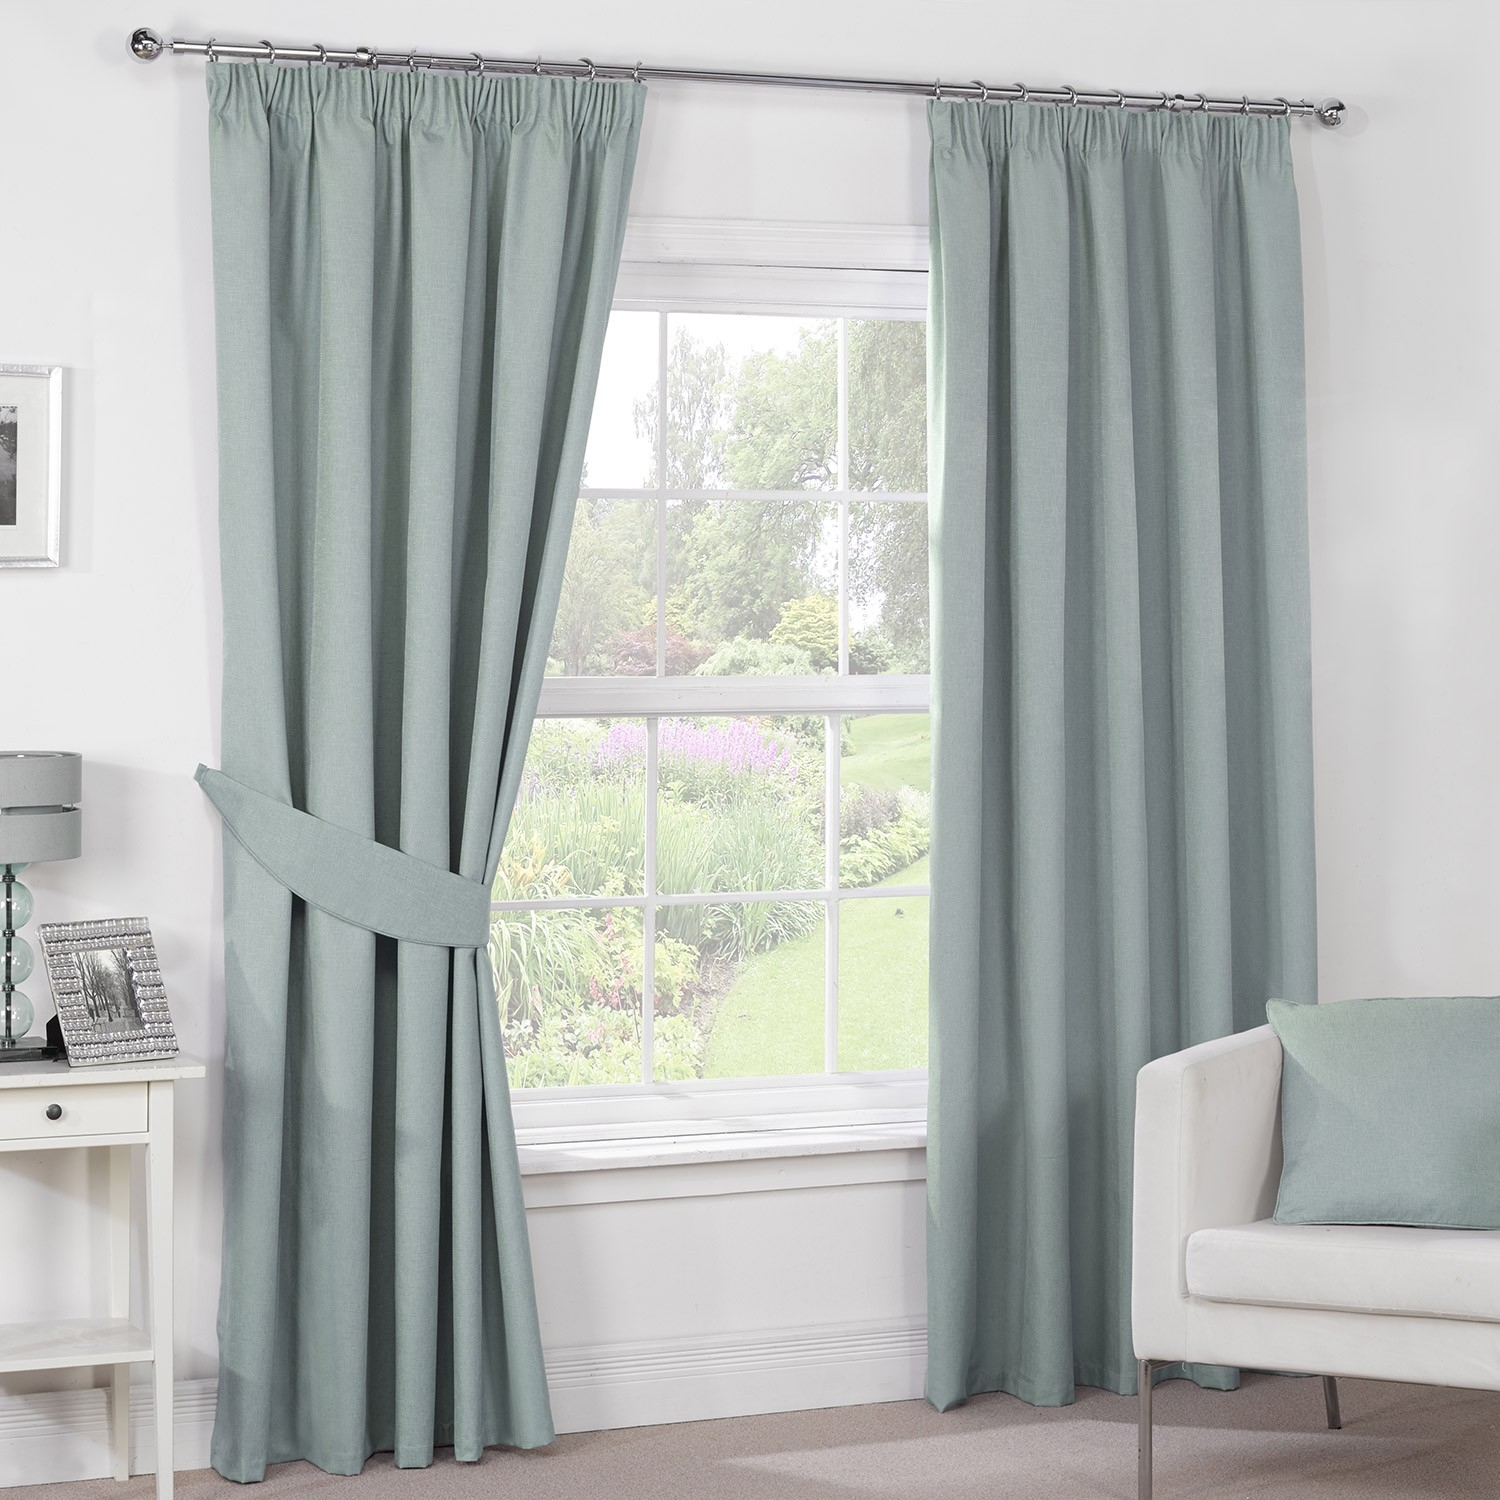 Luna Duck Egg Luxury Blackout Pencil Pleat Curtains Pair Intended For Duck Egg Blue Blackout Curtains (Image 13 of 15)